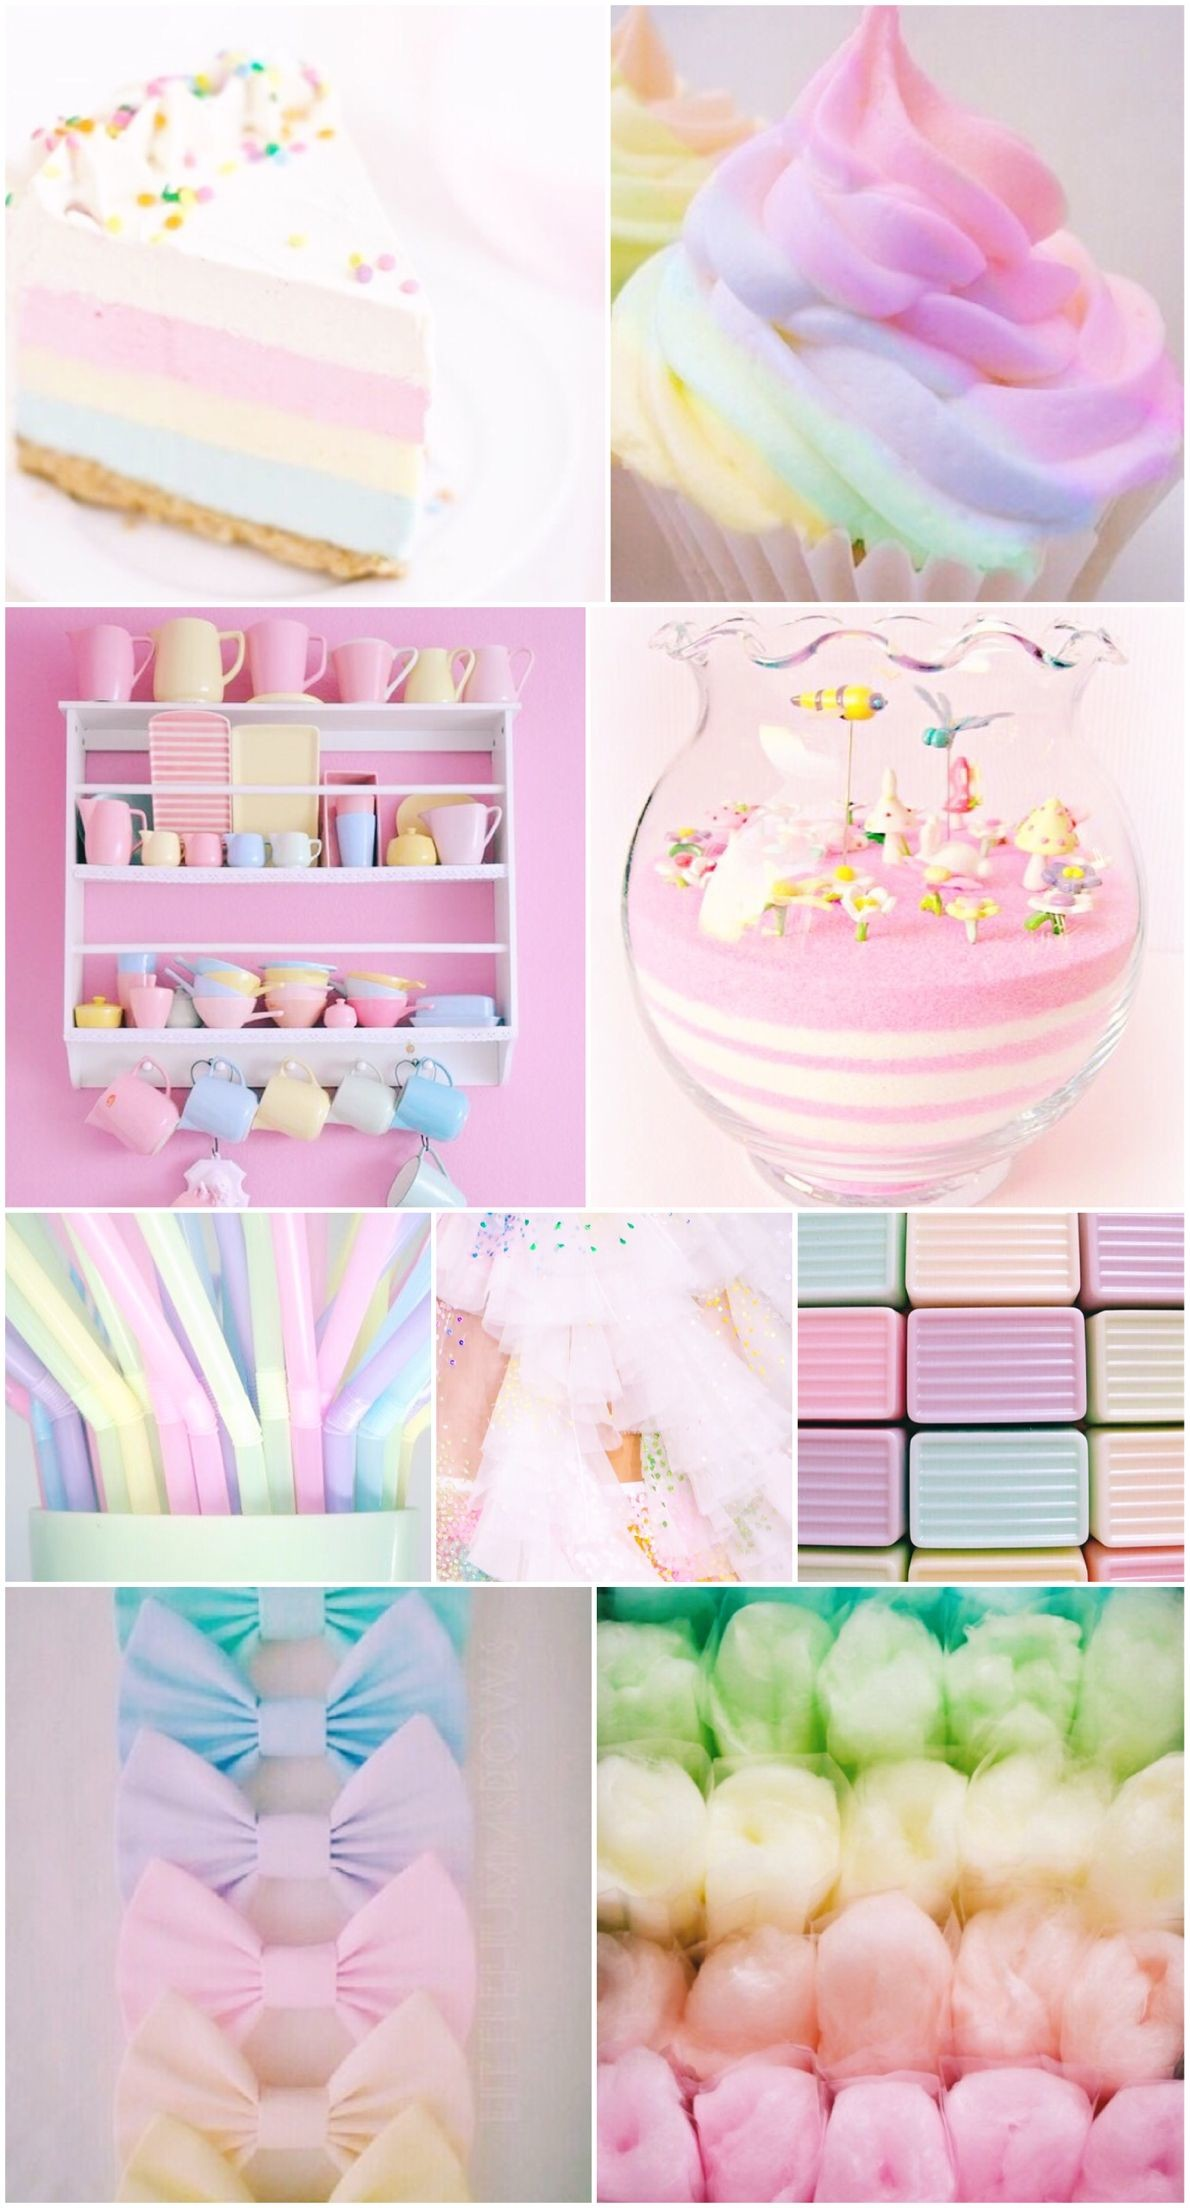 Res: 1190x2208, wallpaper, pastel, rainbow, background, iPhone, pretty, candy